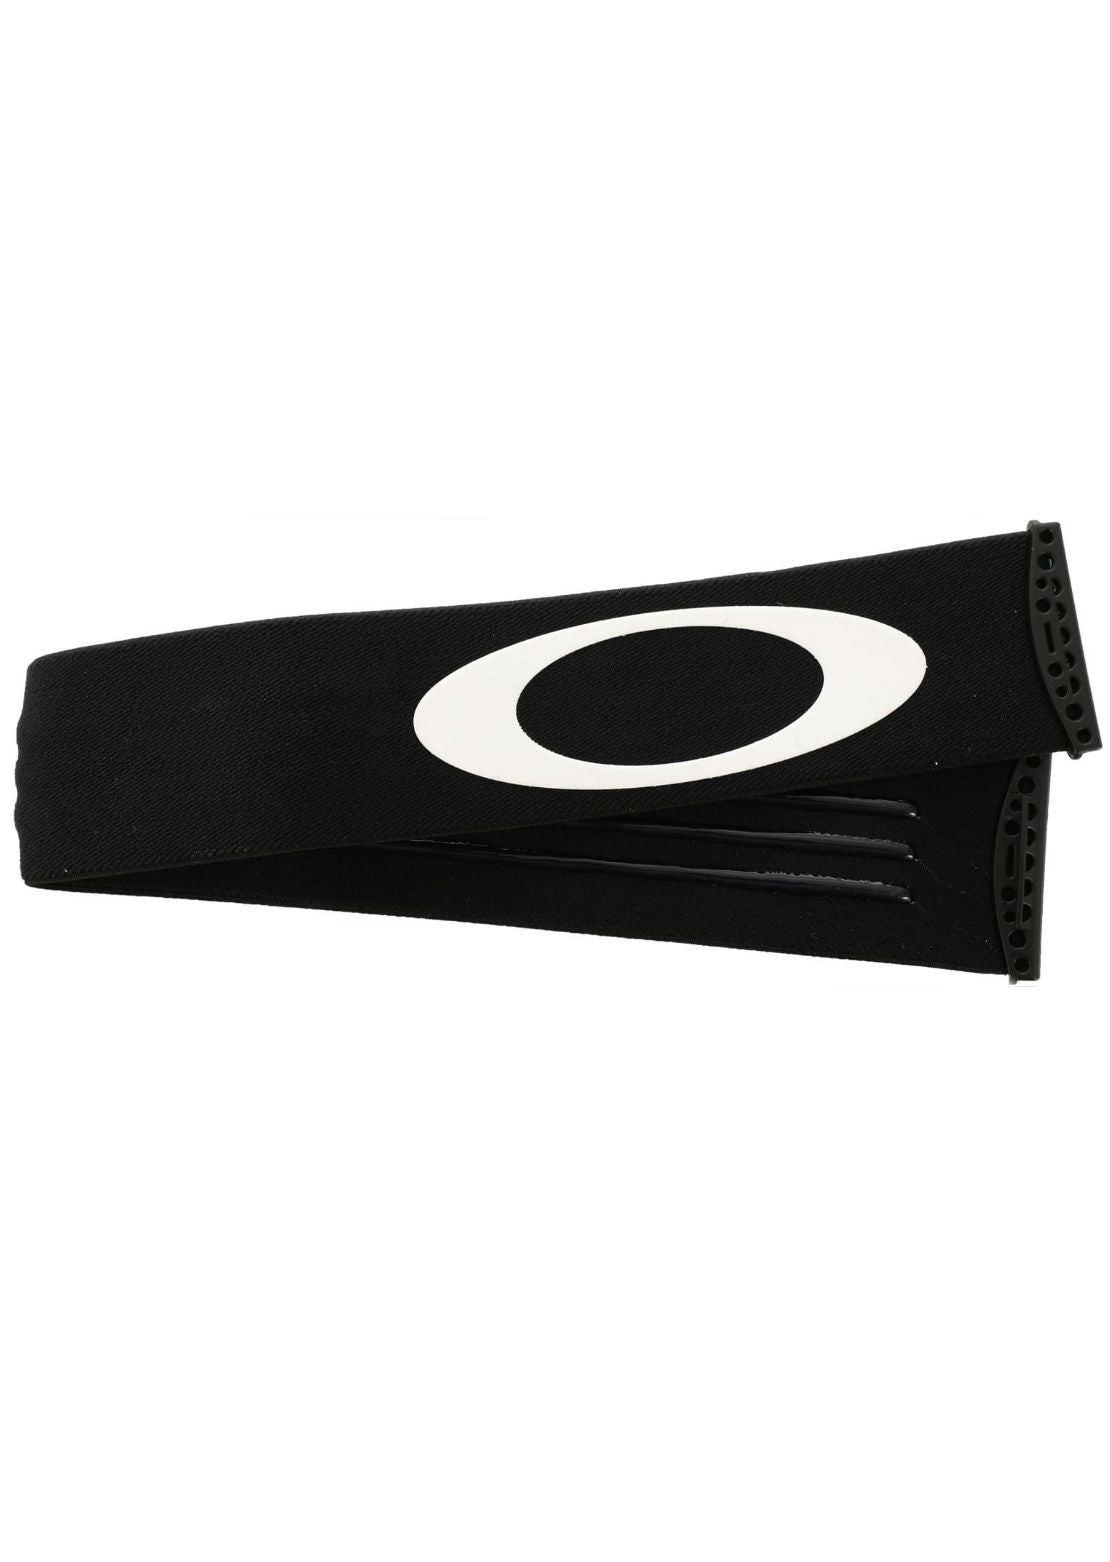 Oakley Universal Pro Strap Accessory Kit Wide - 40 mm